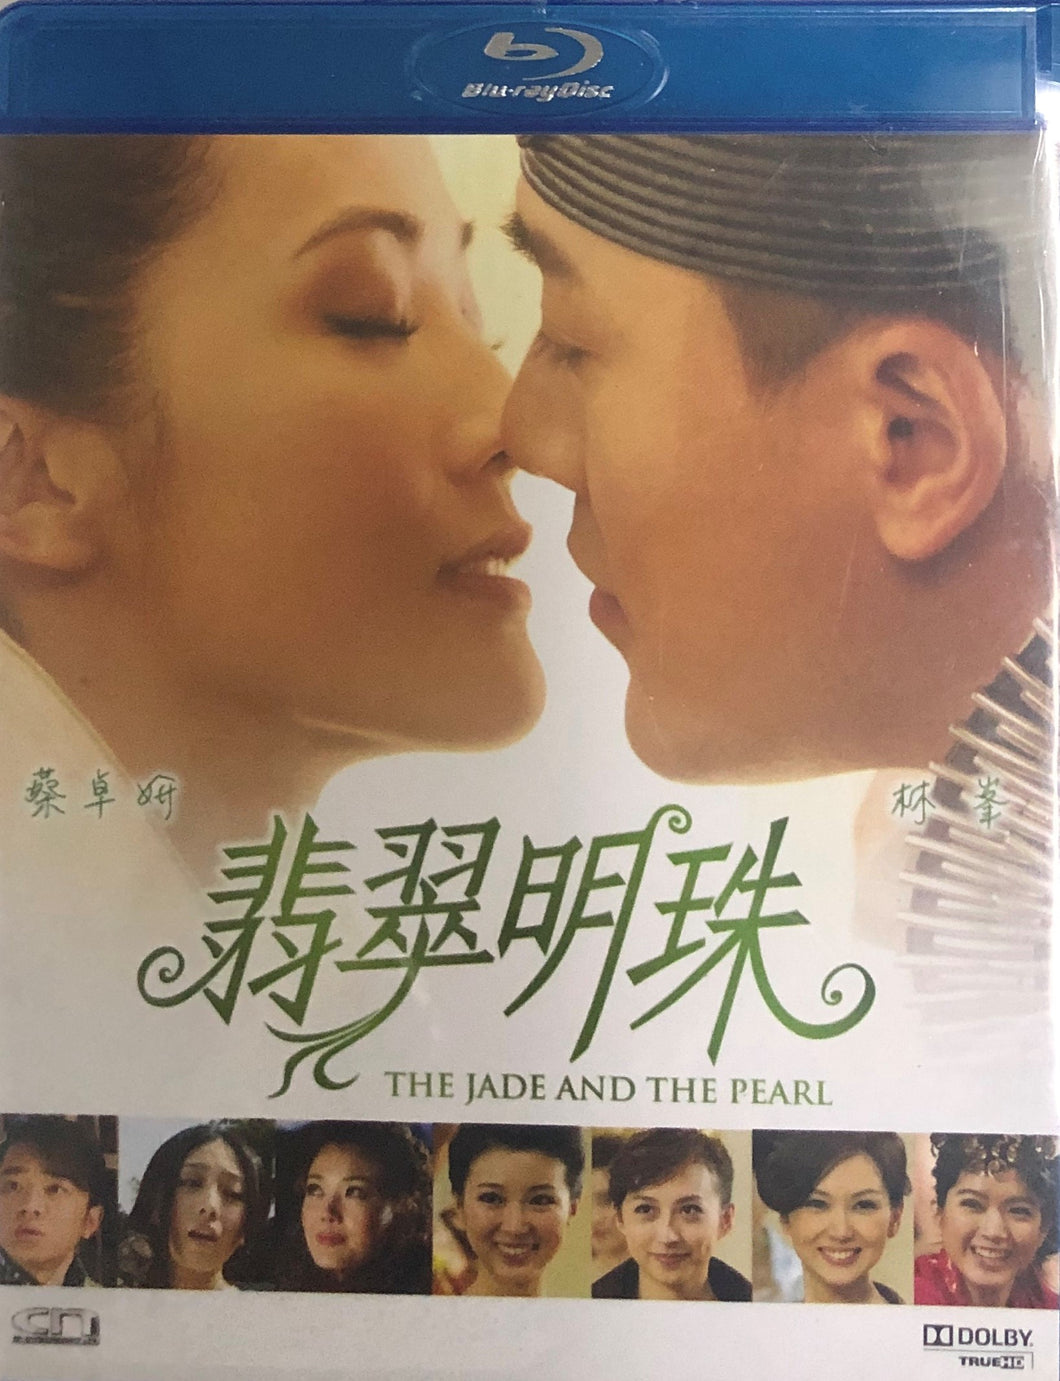 The Jade And The Pearl 翡翠明珠 2010 (Hong Kong Movie) BLU-RAY with English Sub (Region Free)